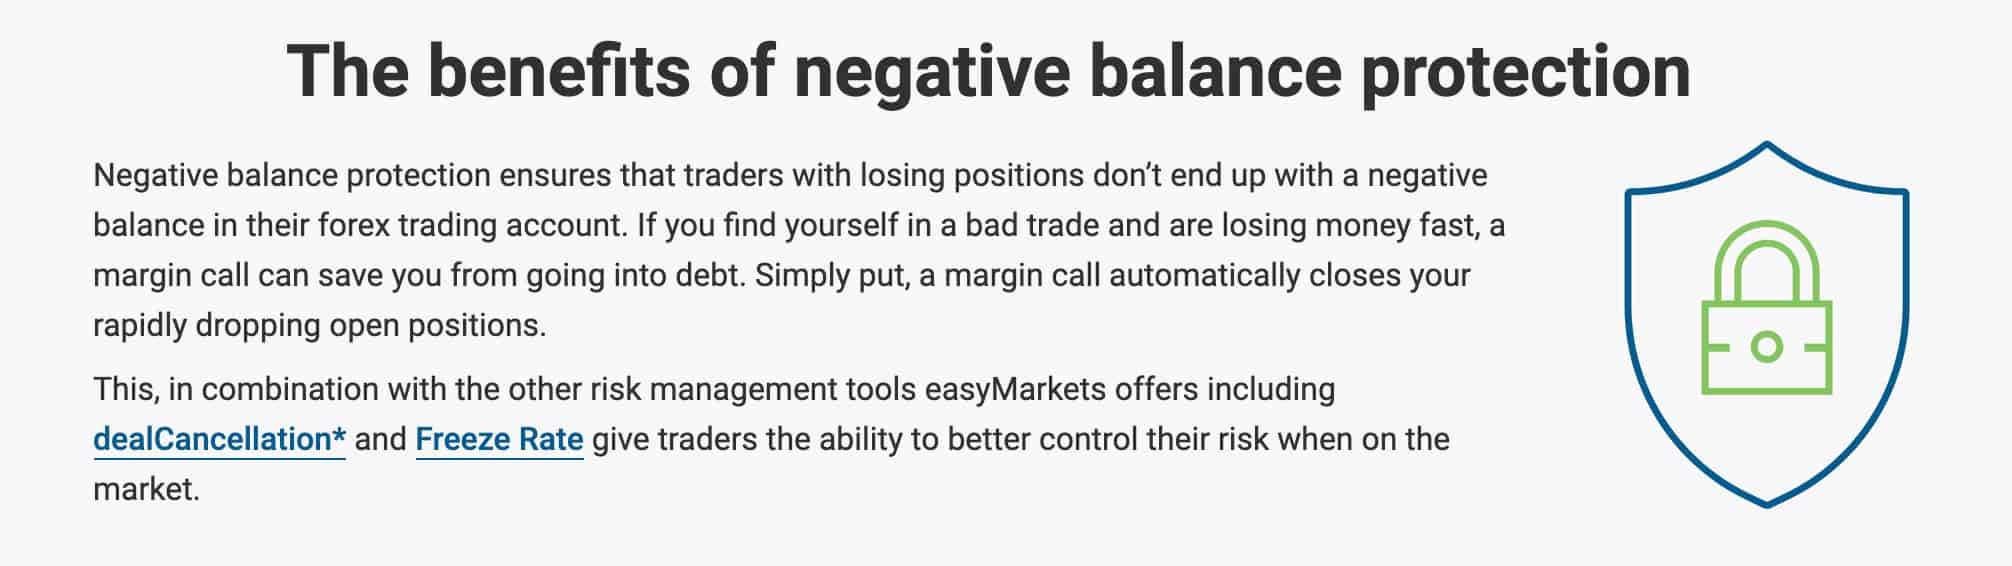 EasyMarkets Negative Balance Protection